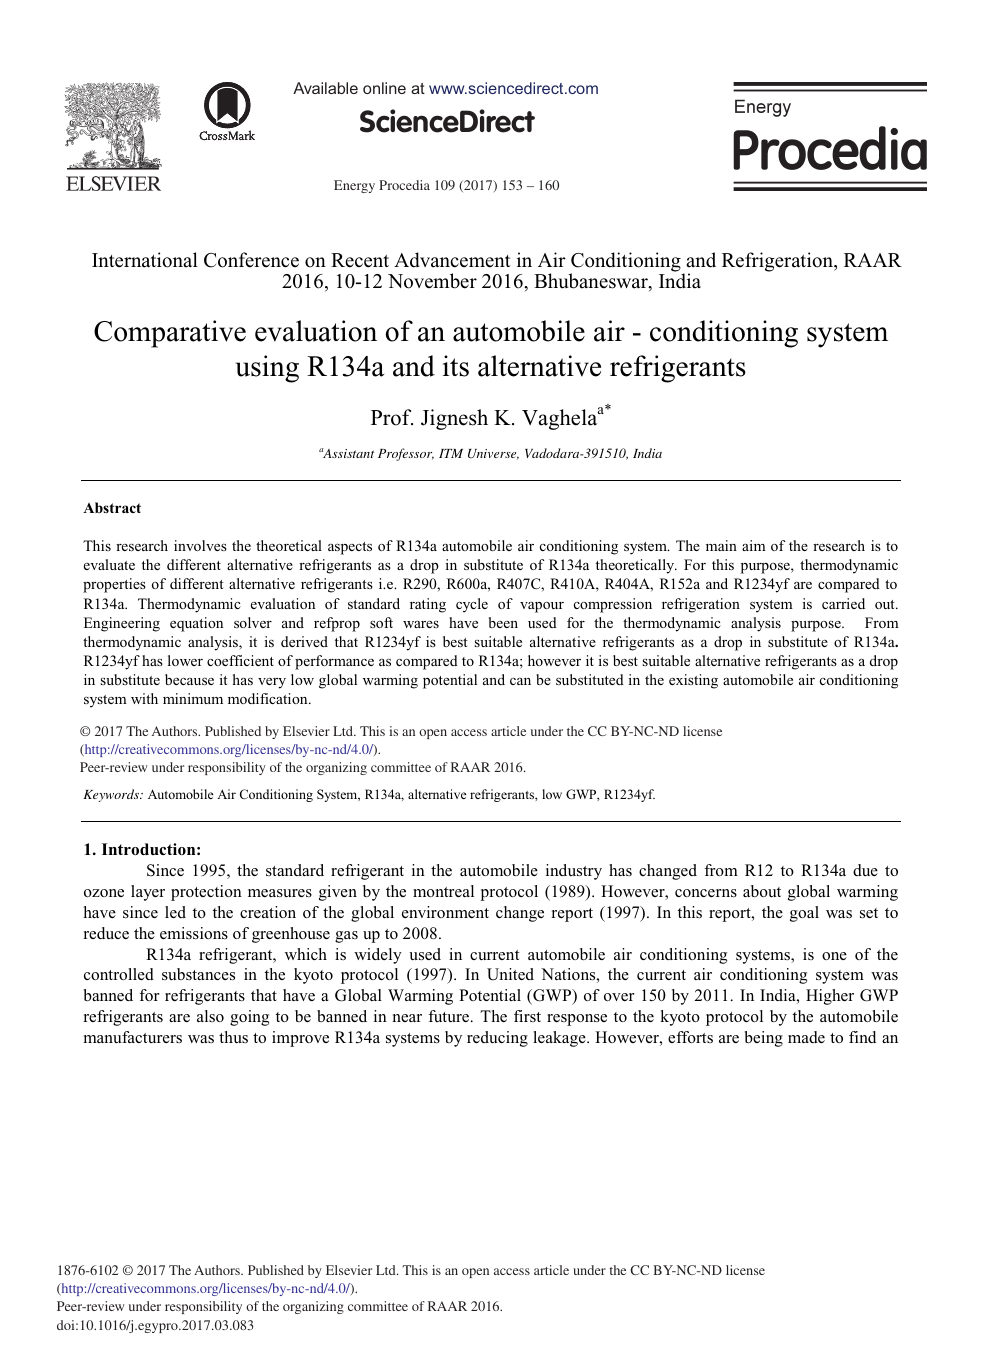 Comparative Evaluation of an Automobile Air - Conditioning